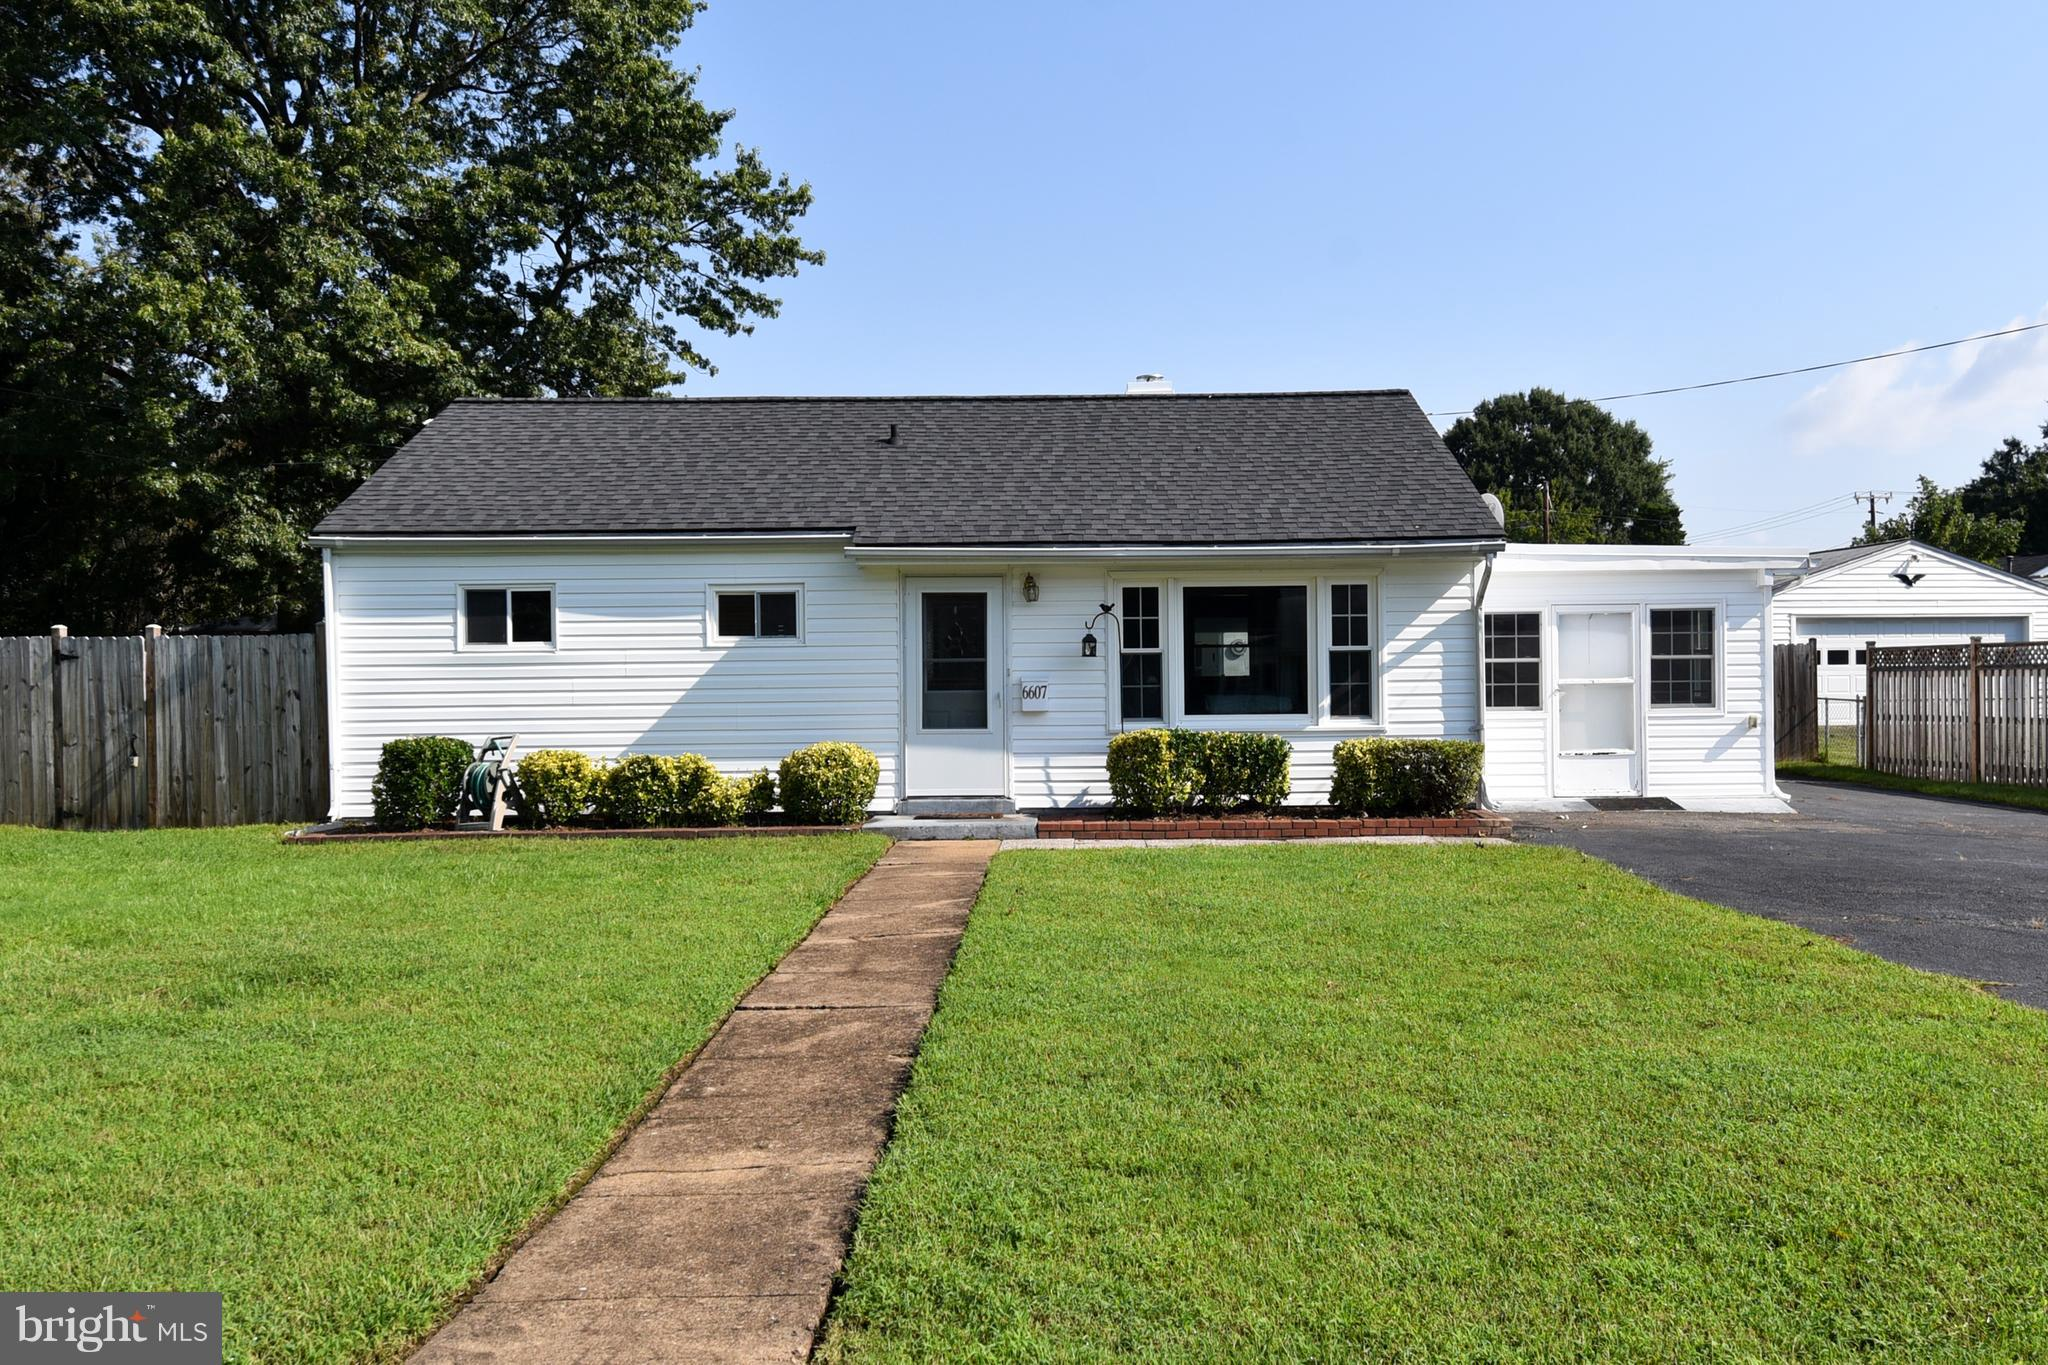 Move-in ready 3 bedroom, 2 bath rambler, Large fenced in yard with oversized detached garage and shed/workshop with AC unit and electricity. Large kitchen with granite countertops plus bonus room/dining room.  GREAT LOCATION - close to it all!  GREAT PRICE!